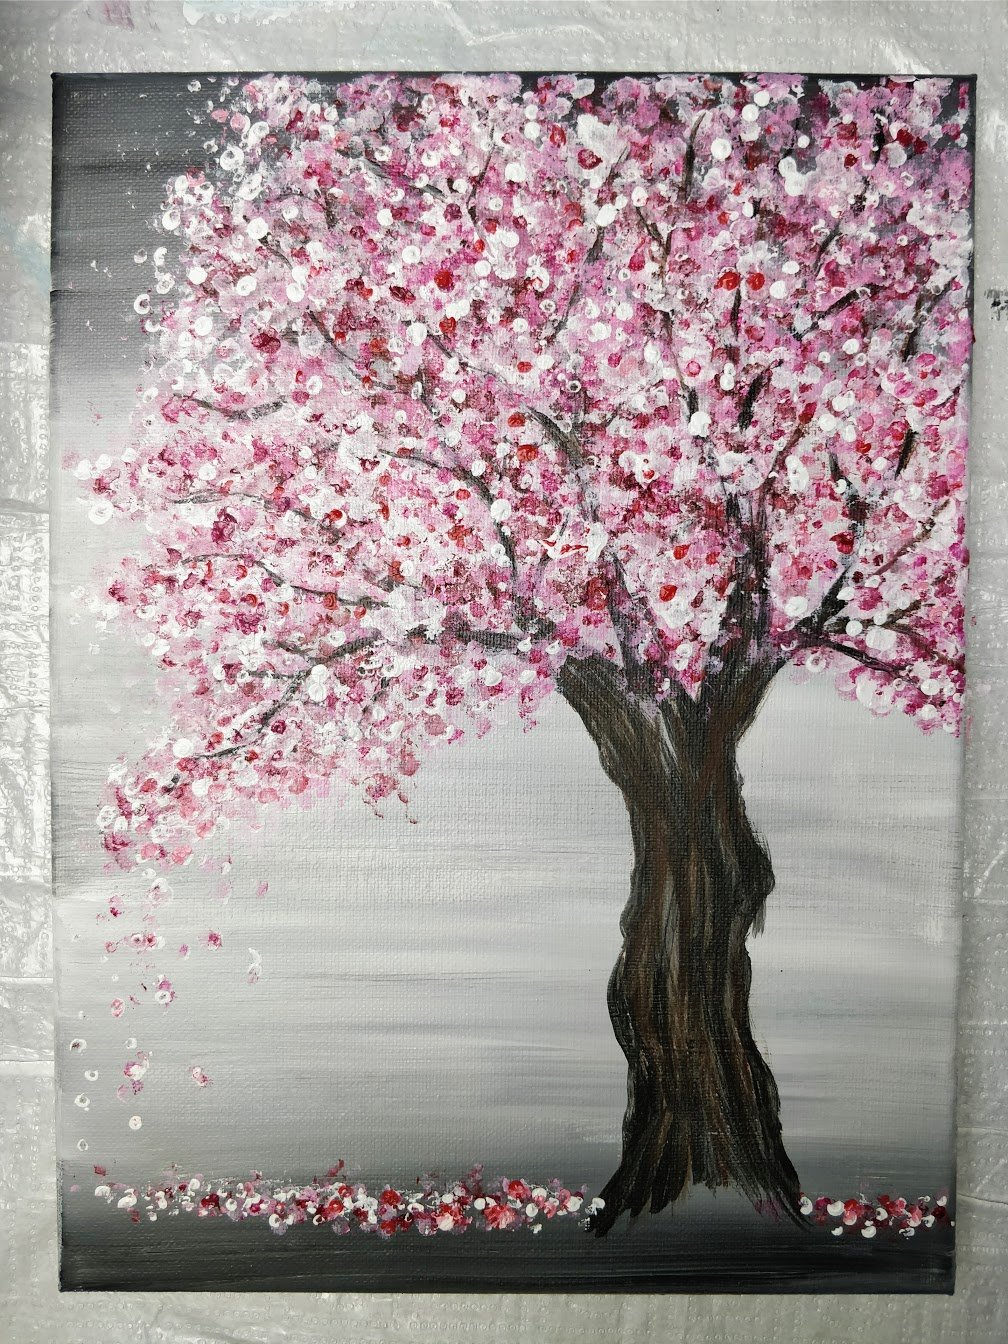 how to paint cherry blossom tree